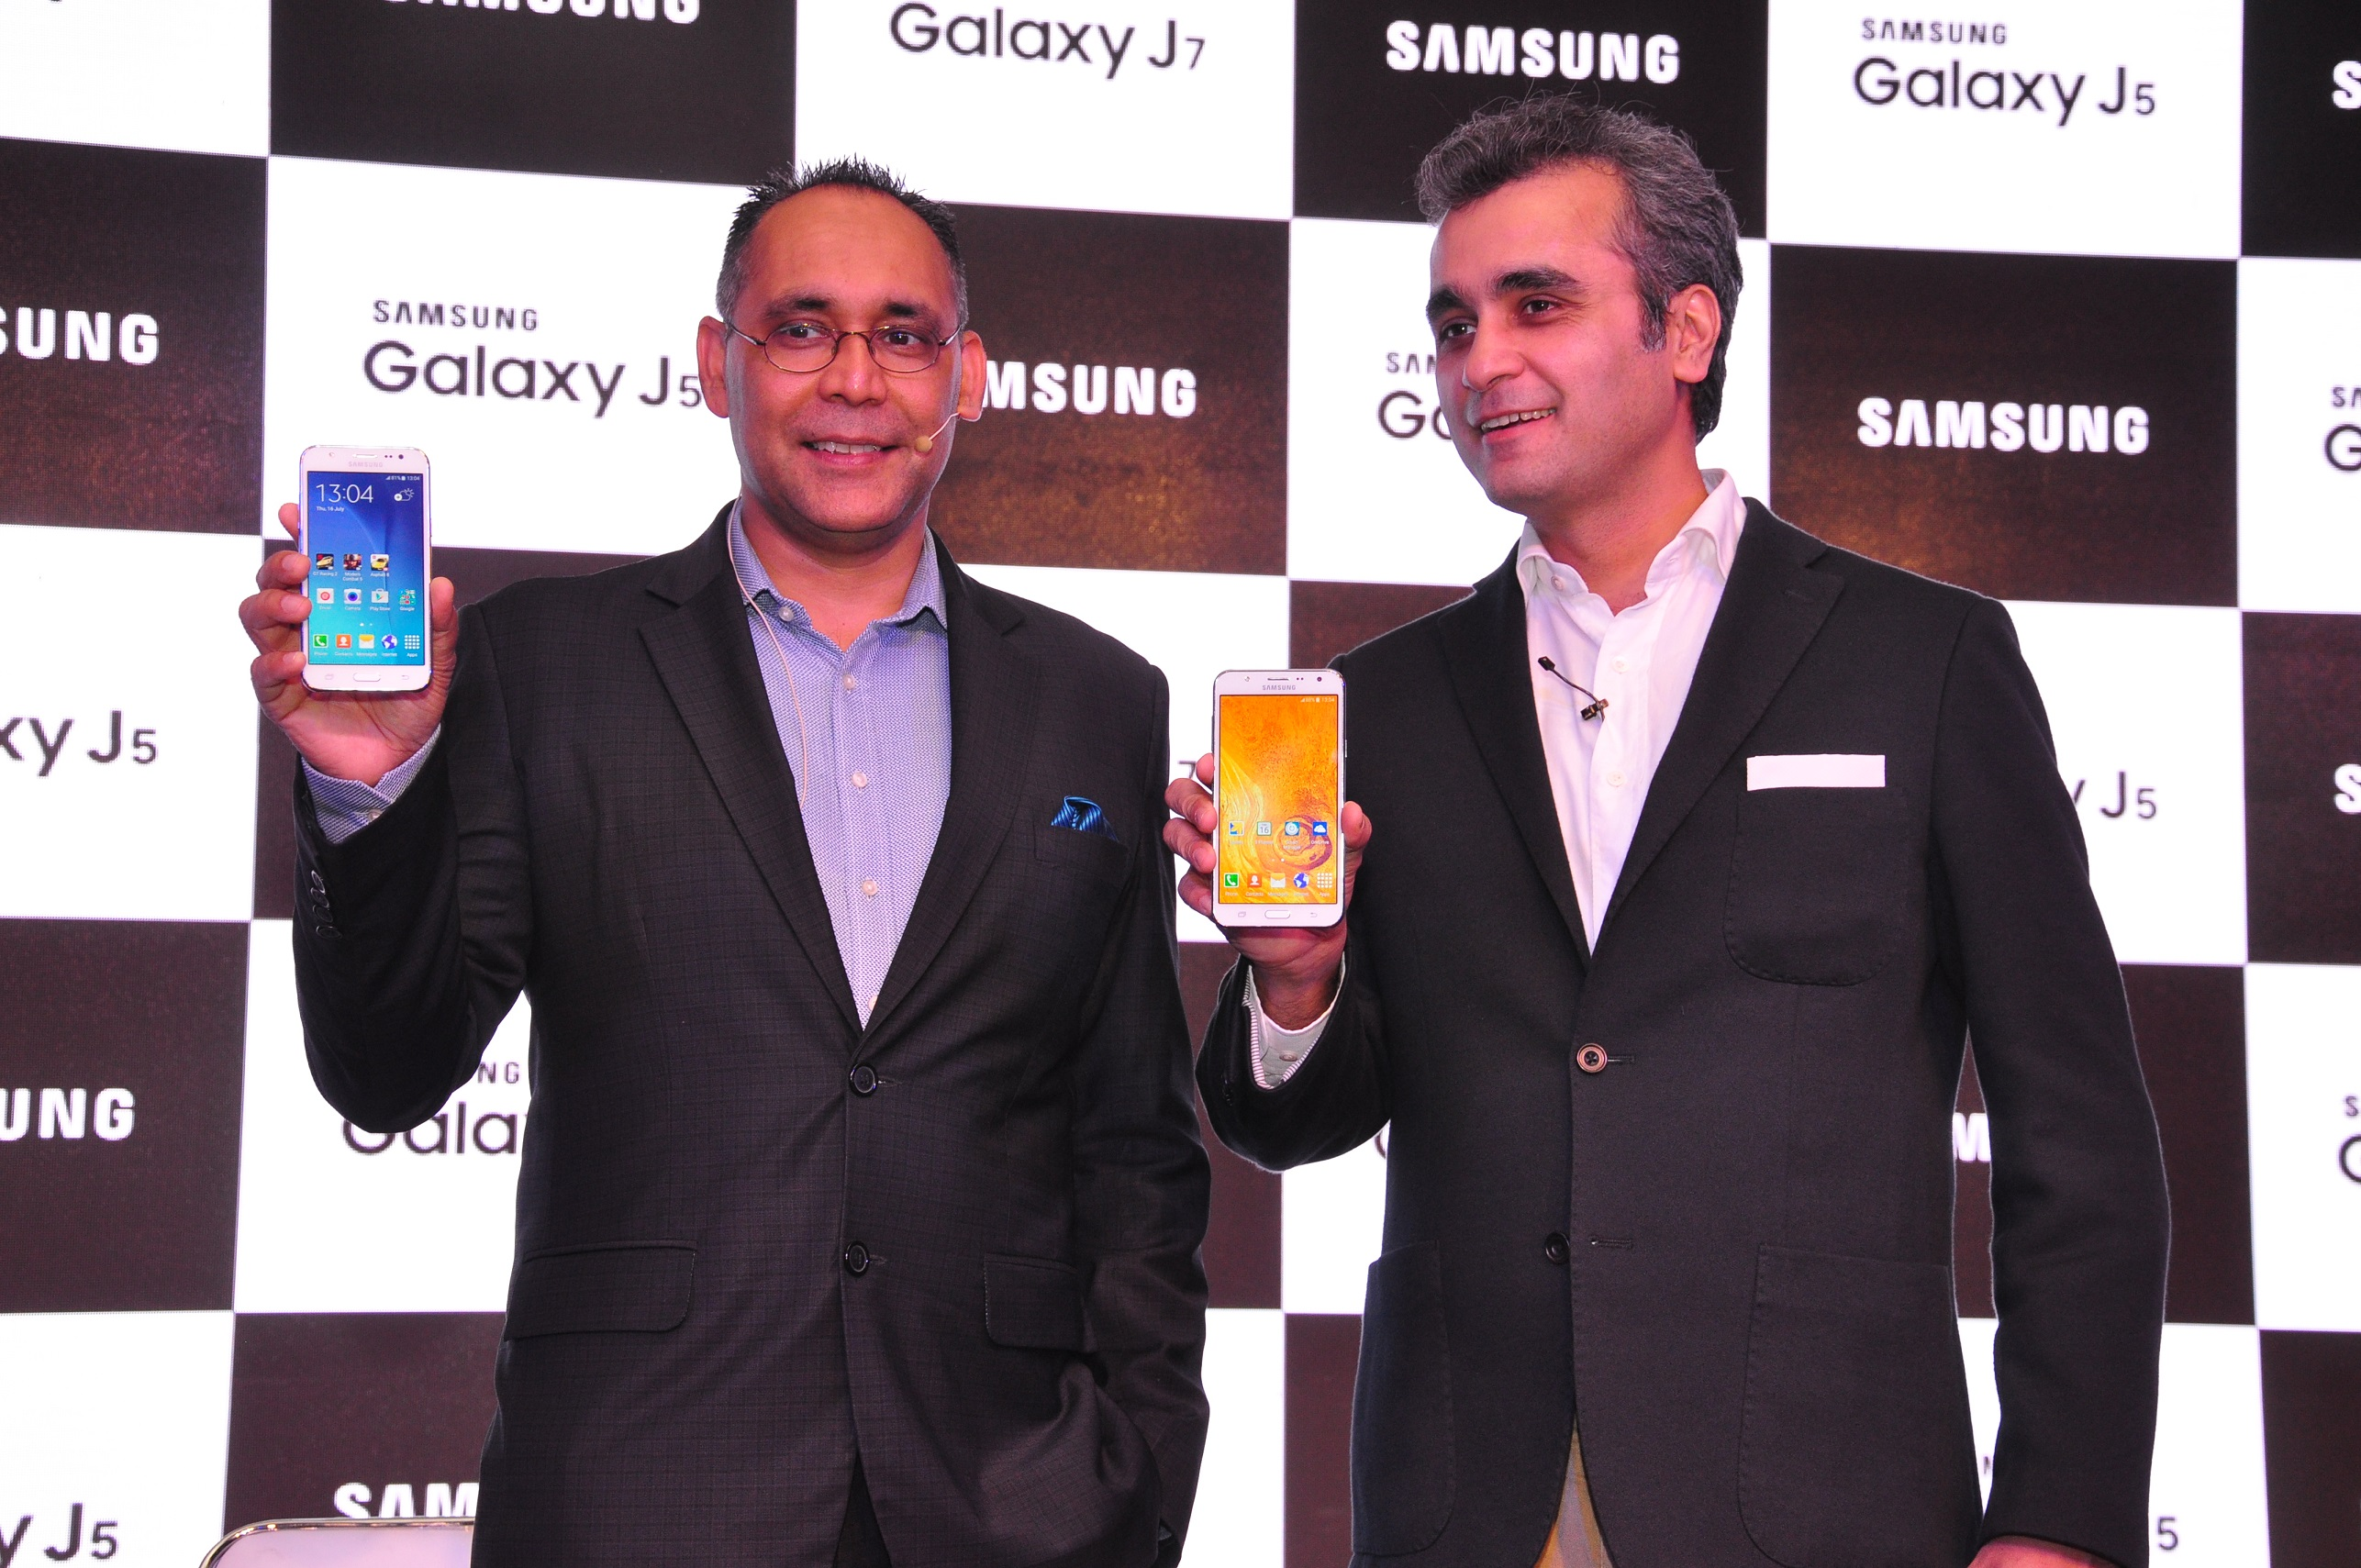 Samsung Galaxy J5, J7 launched in India, price Rs 12k and 15k